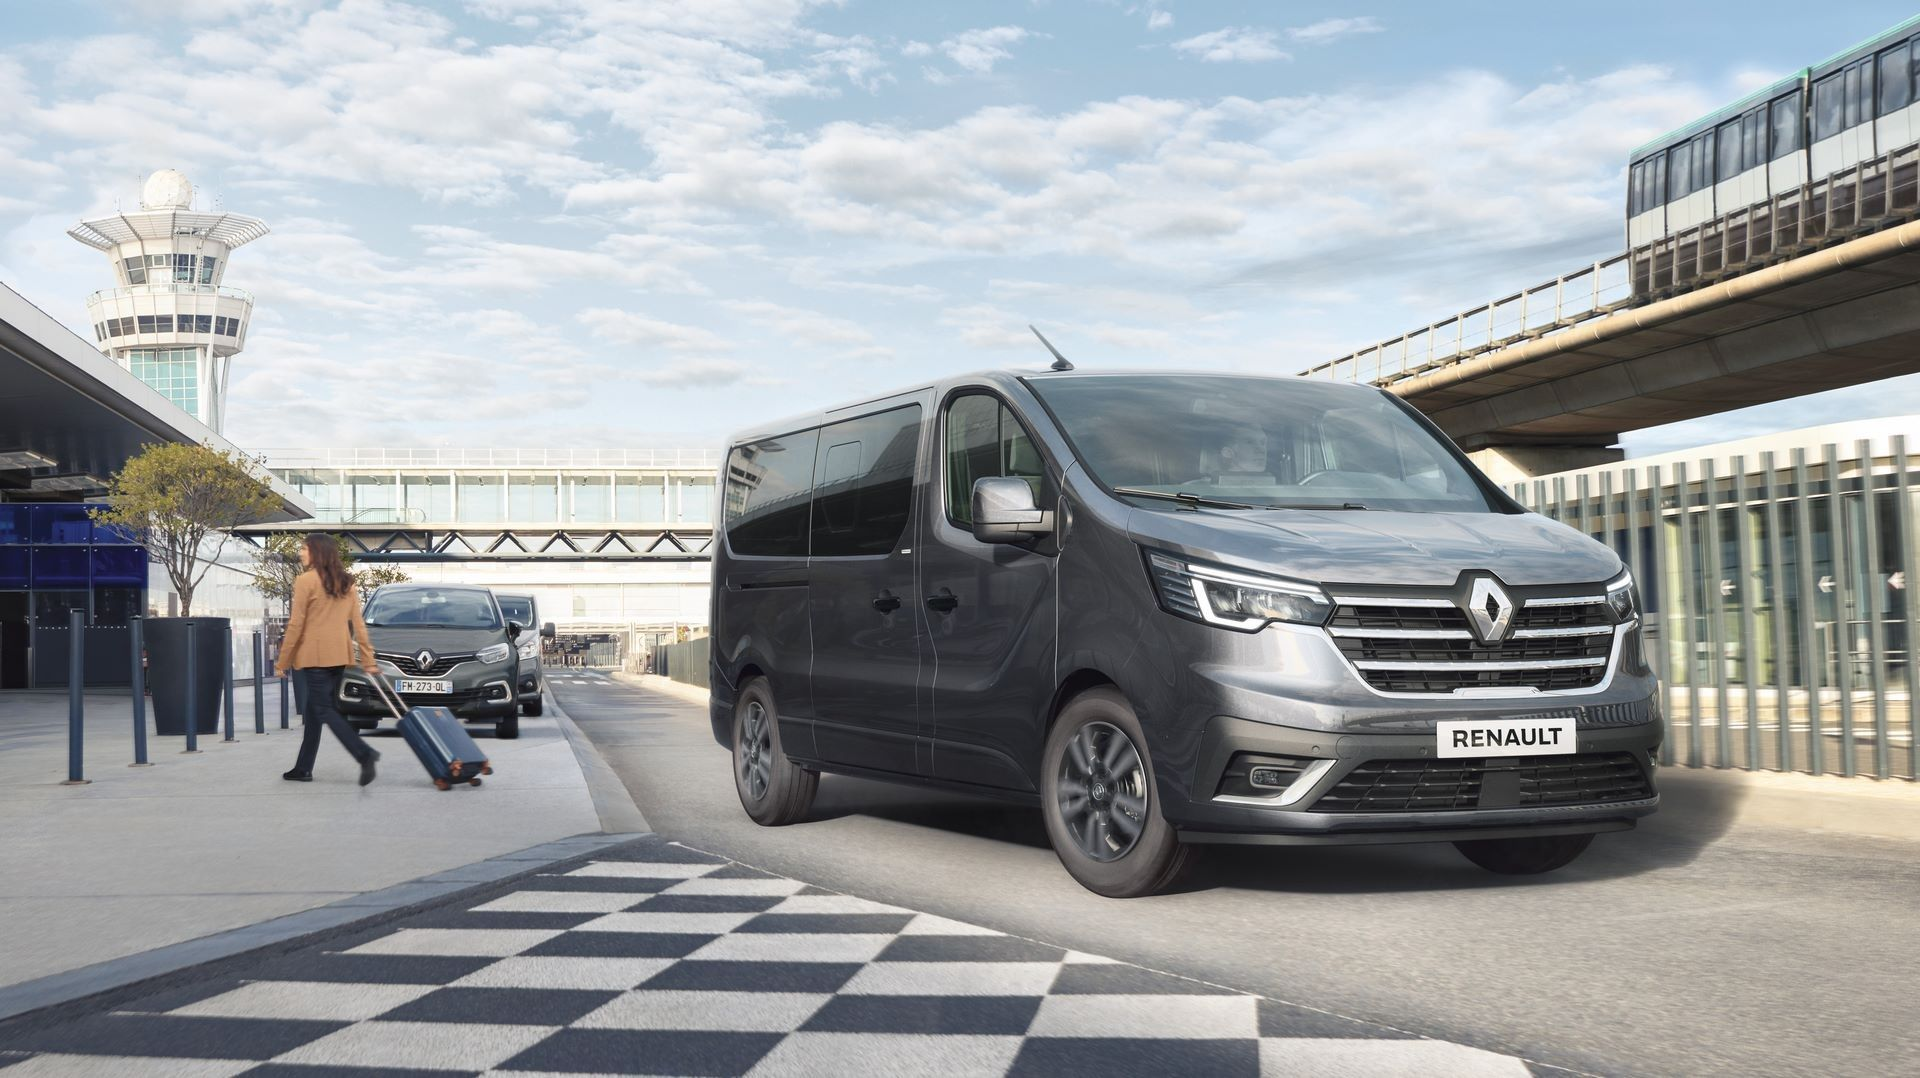 RENAULT TRAFIC SPACECLASS (F82 E4) - PHASE 2